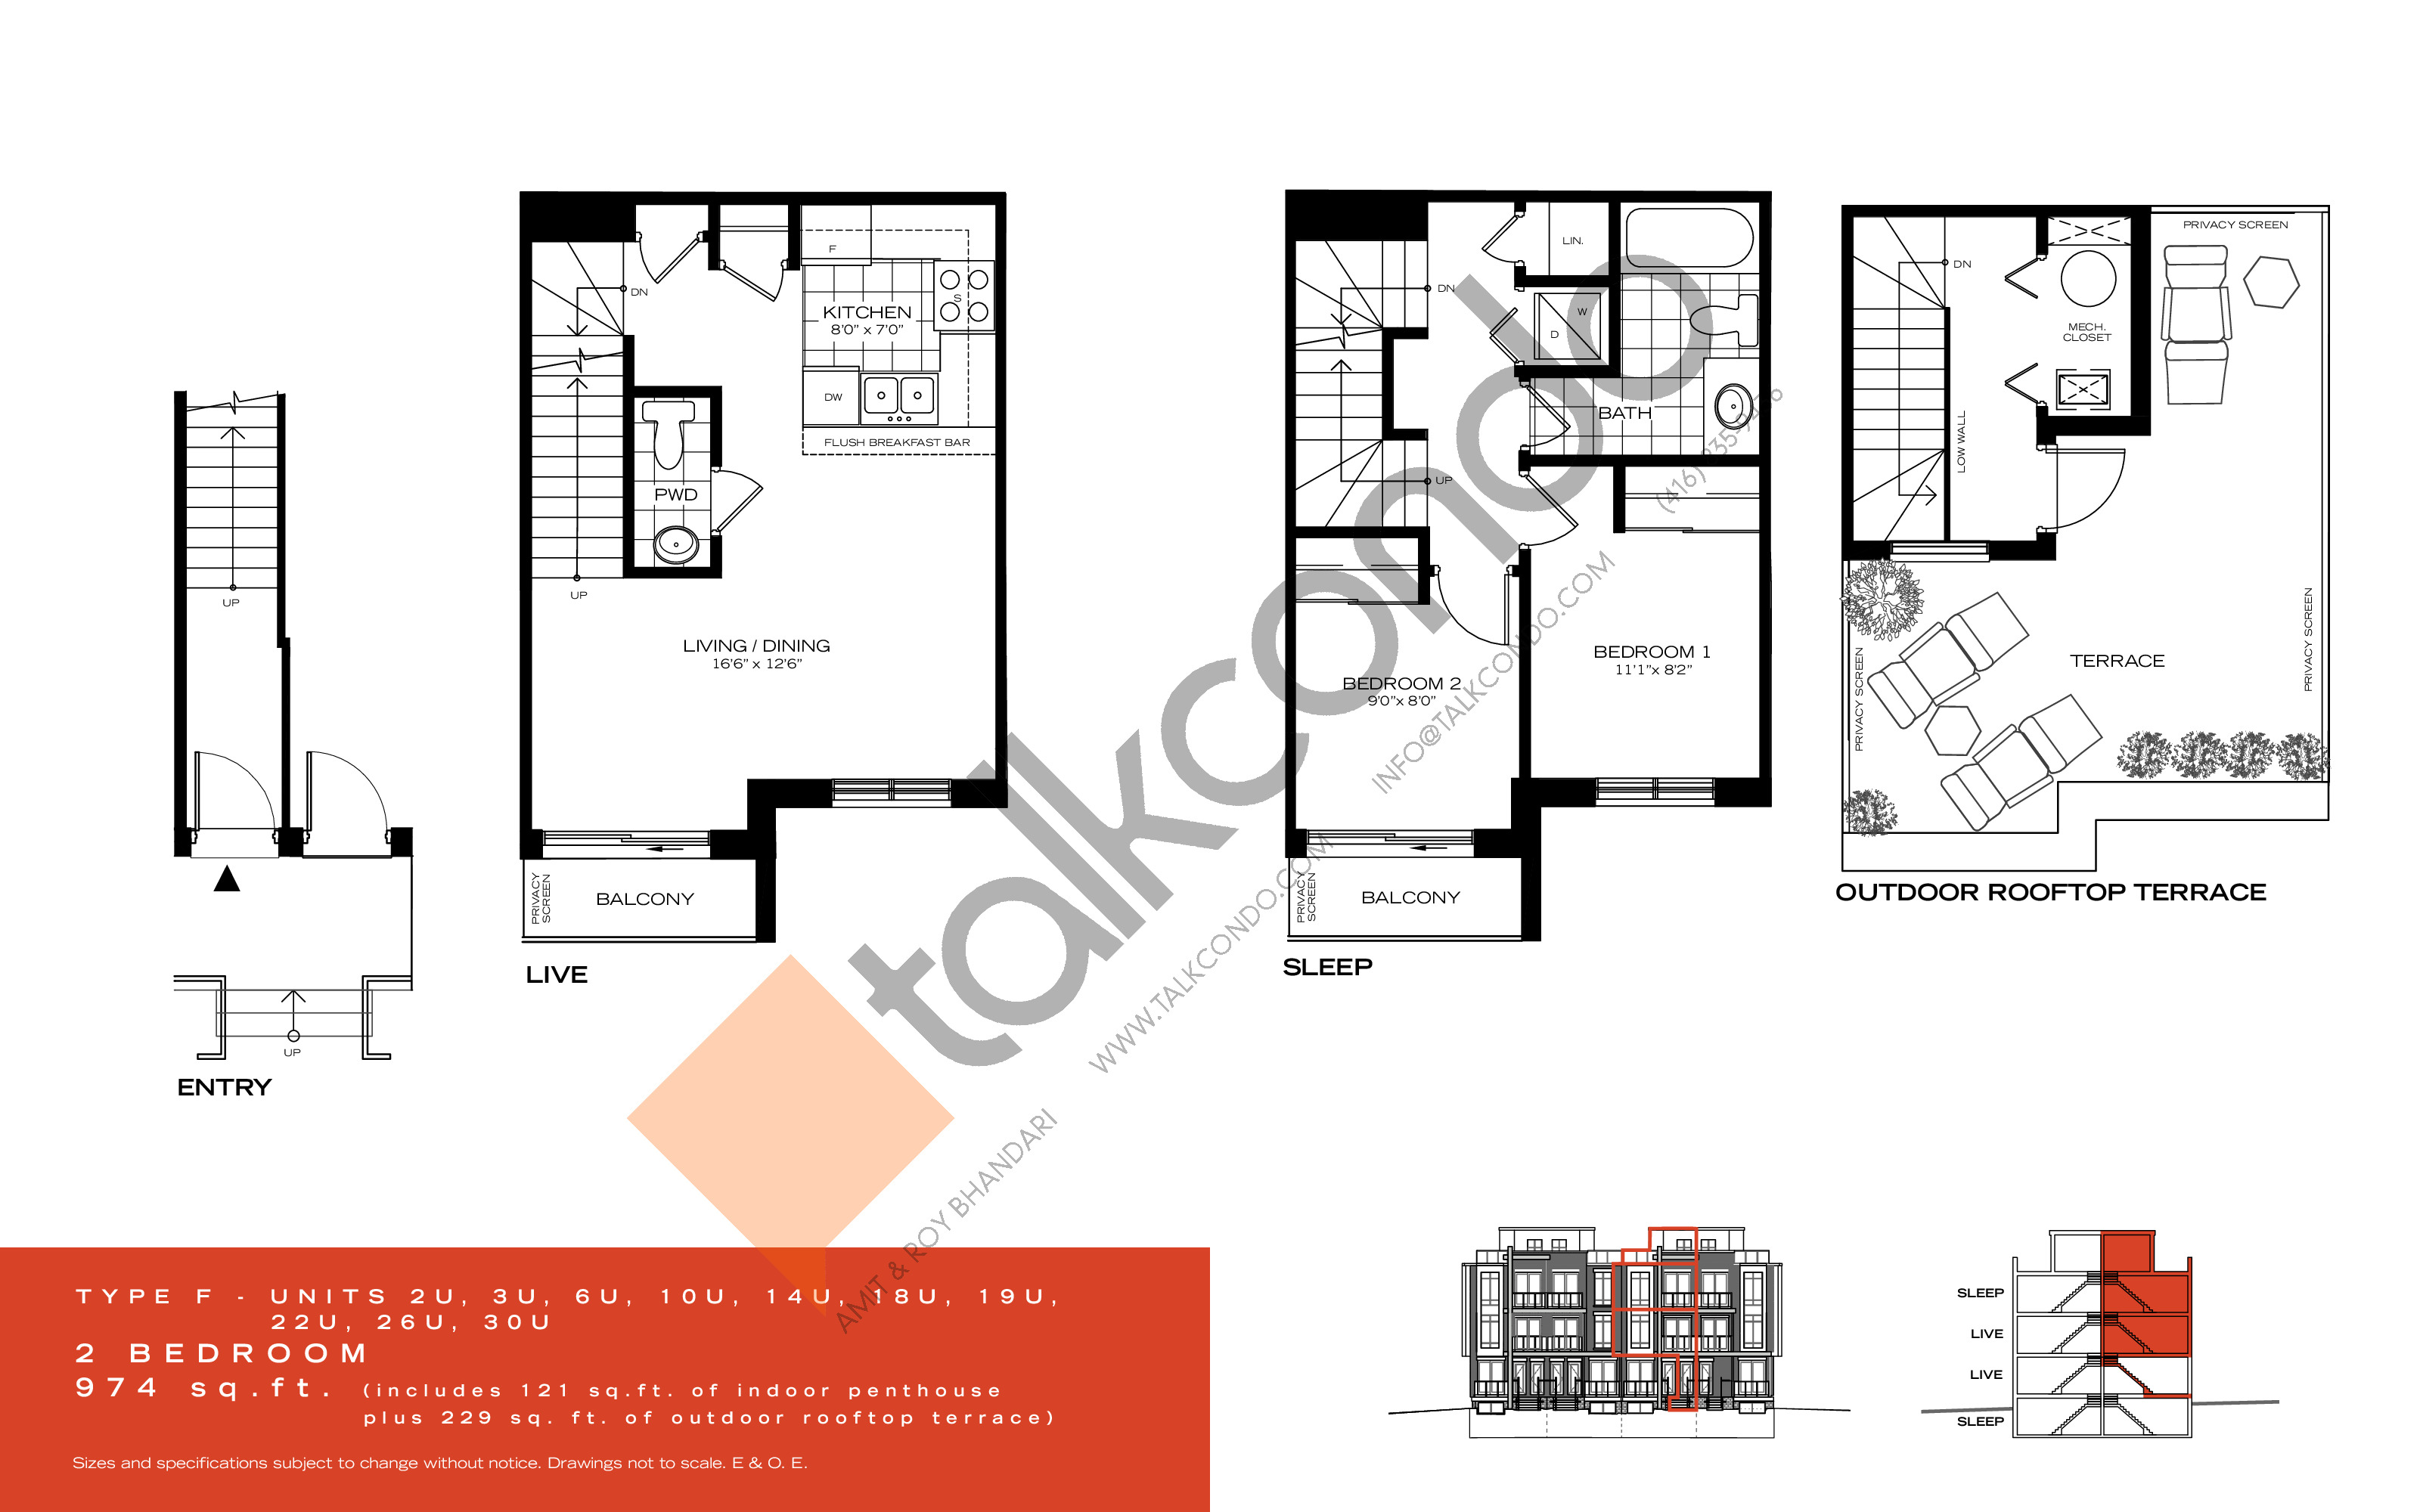 Type F Floor Plan at Wycliffe at the Promenade - 974 sq.ft